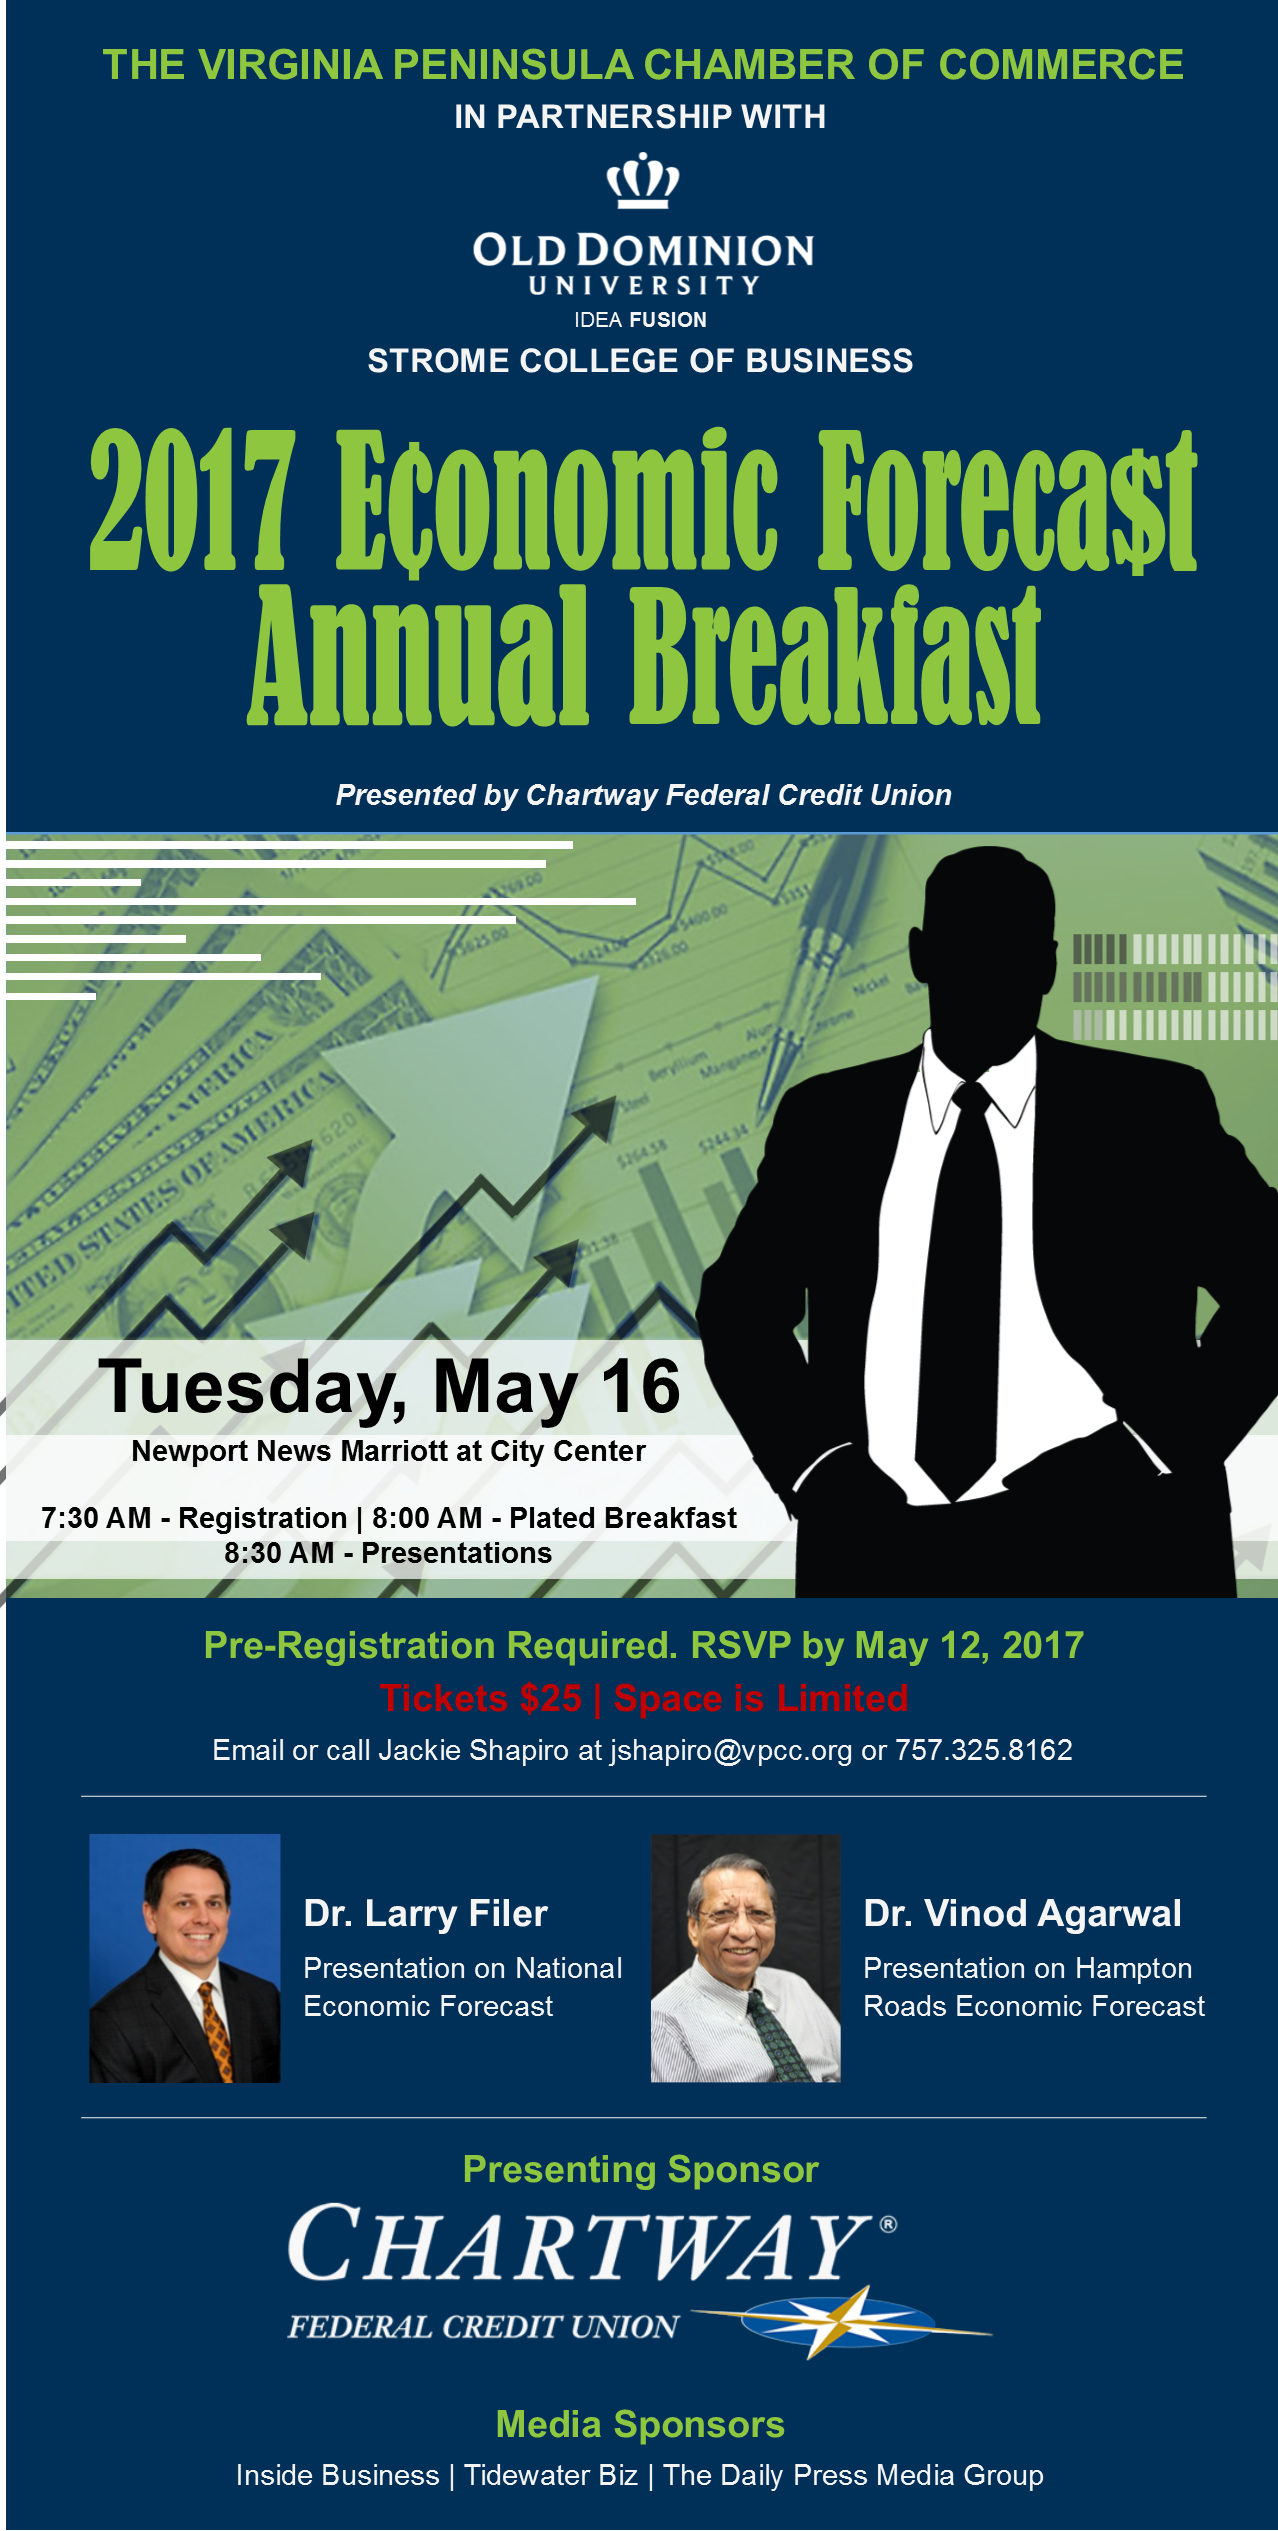 2017-0516-Economic-Forecast-Annual-Breakfast-FLYER-(Edited-0323).jpg